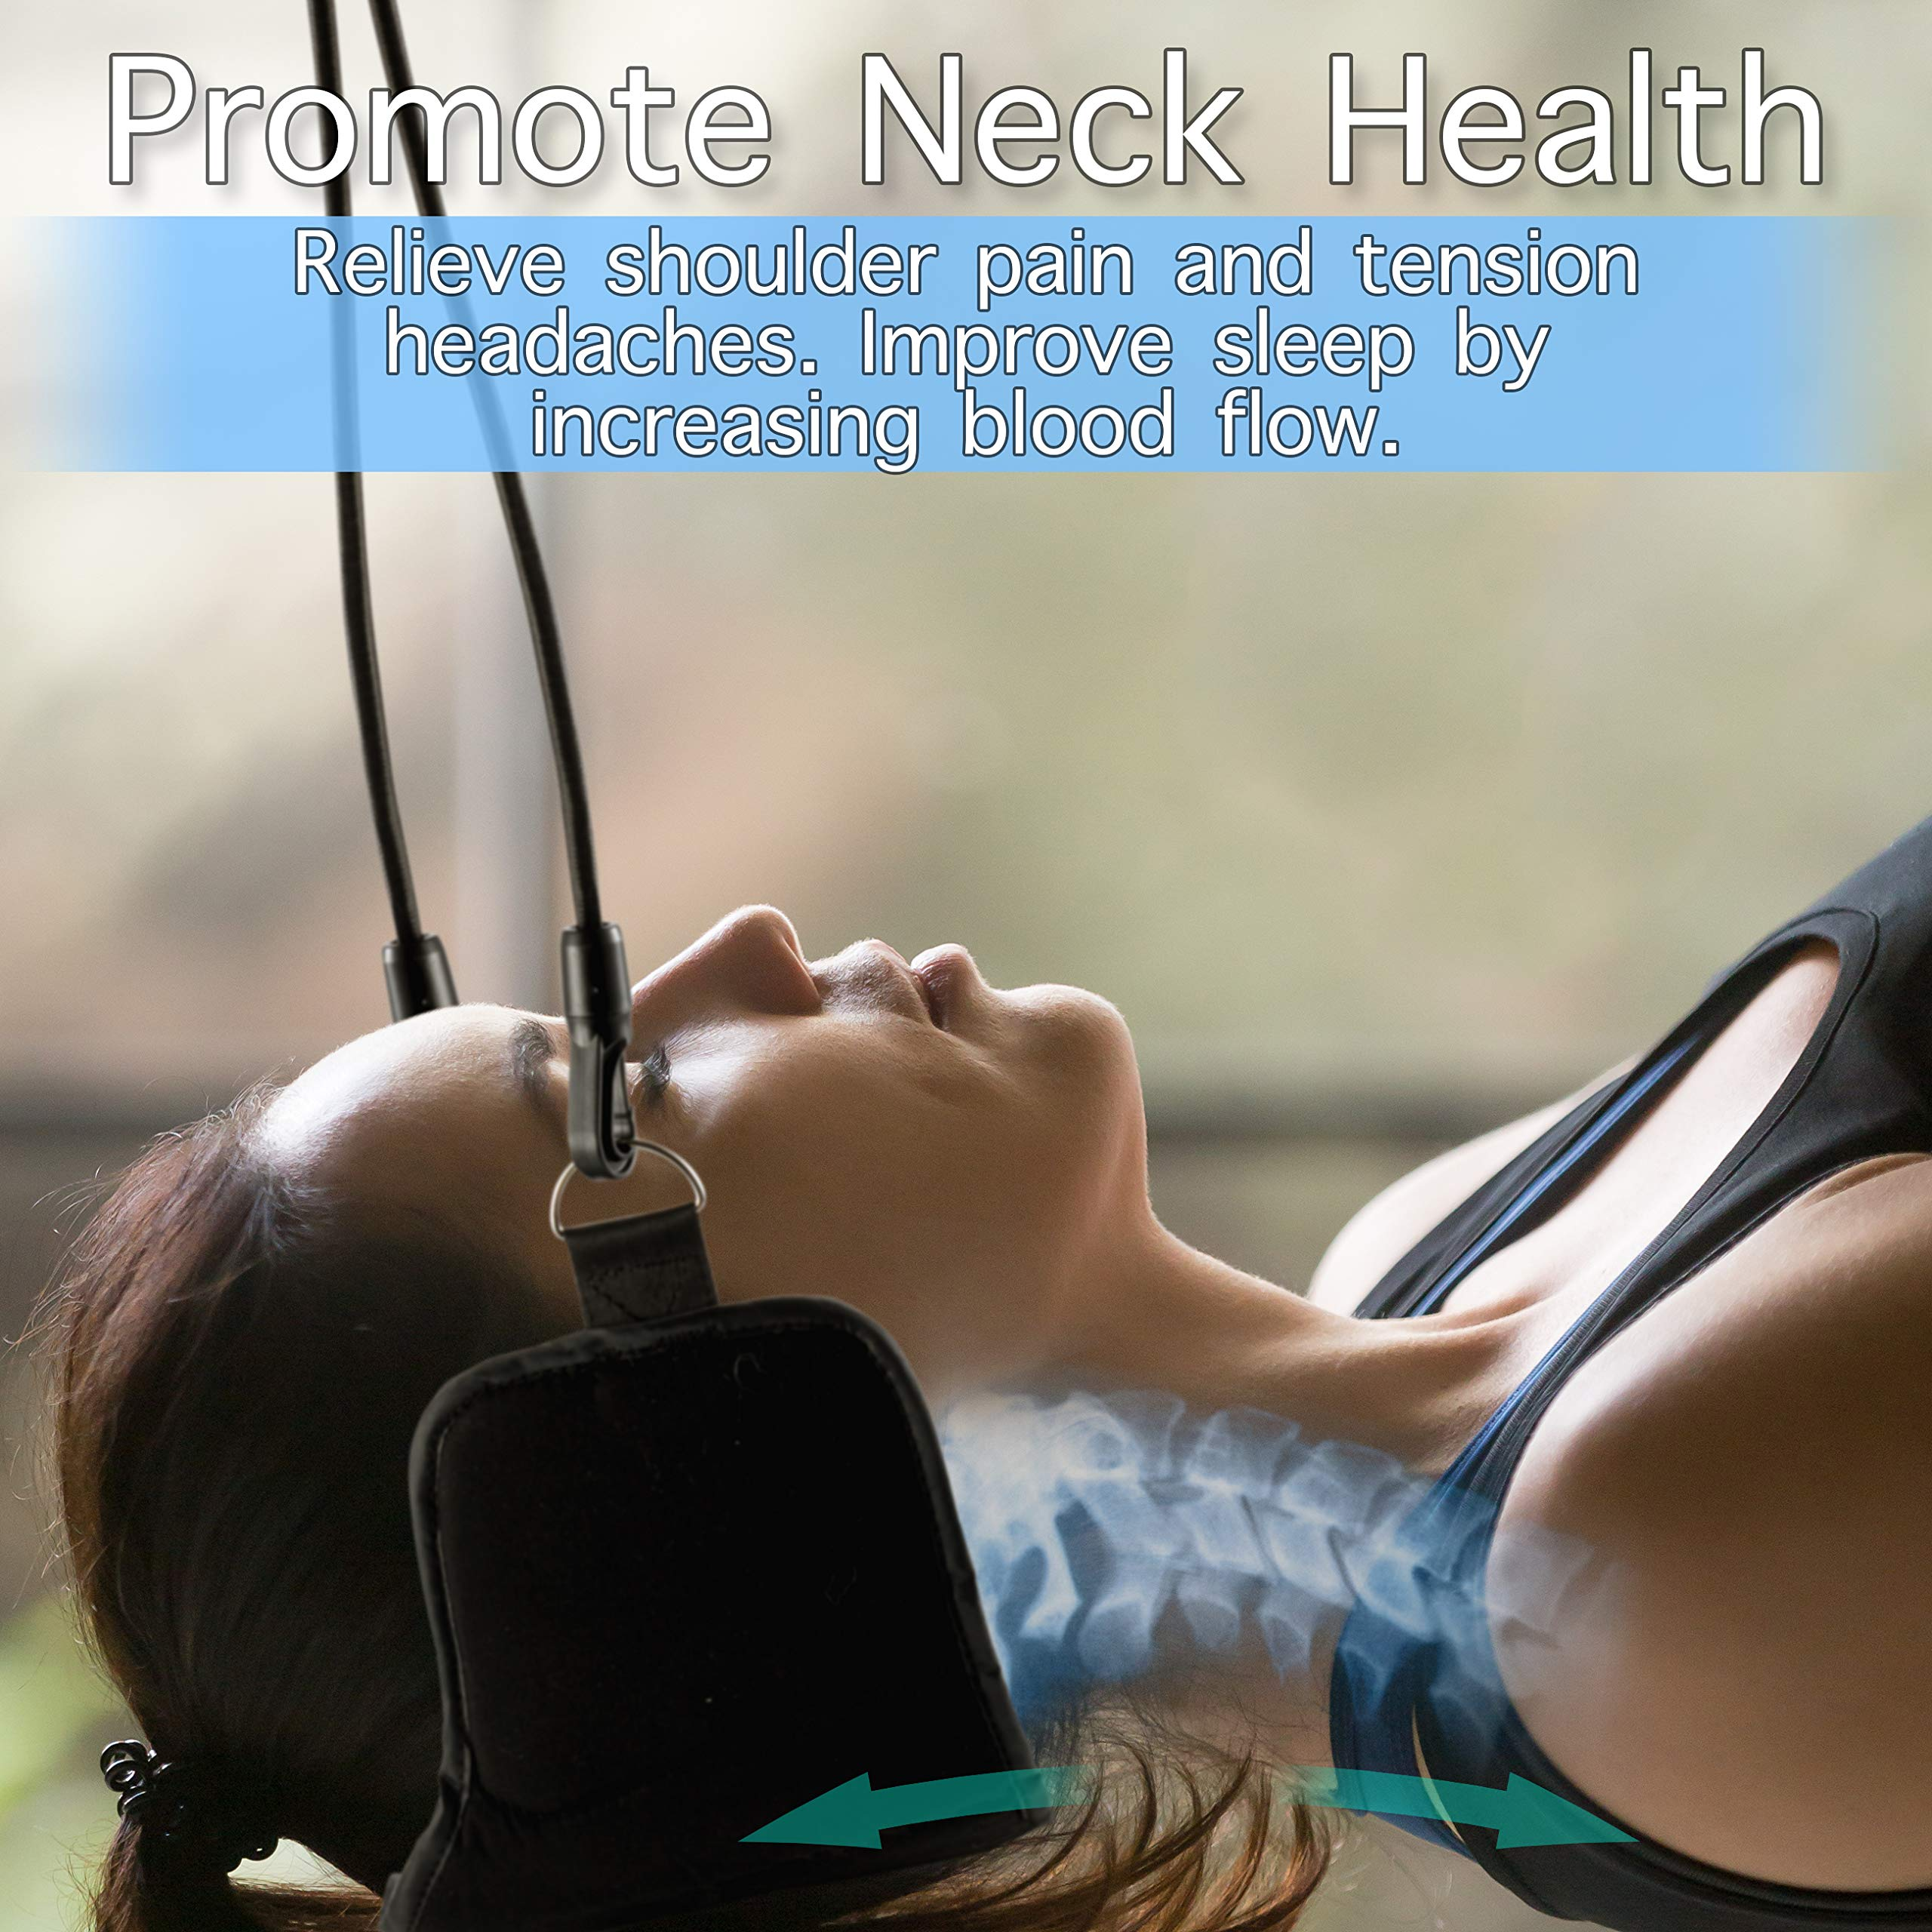 Hammock for Neck Pain Relief Bundle Set – Includes Neck Traction Device + Resistance Band + Stretching & Mobility Digital Download | Cervical Neck Relief Hammock | Portable Head & Neck Sling Stretcher by Tephran (Image #3)